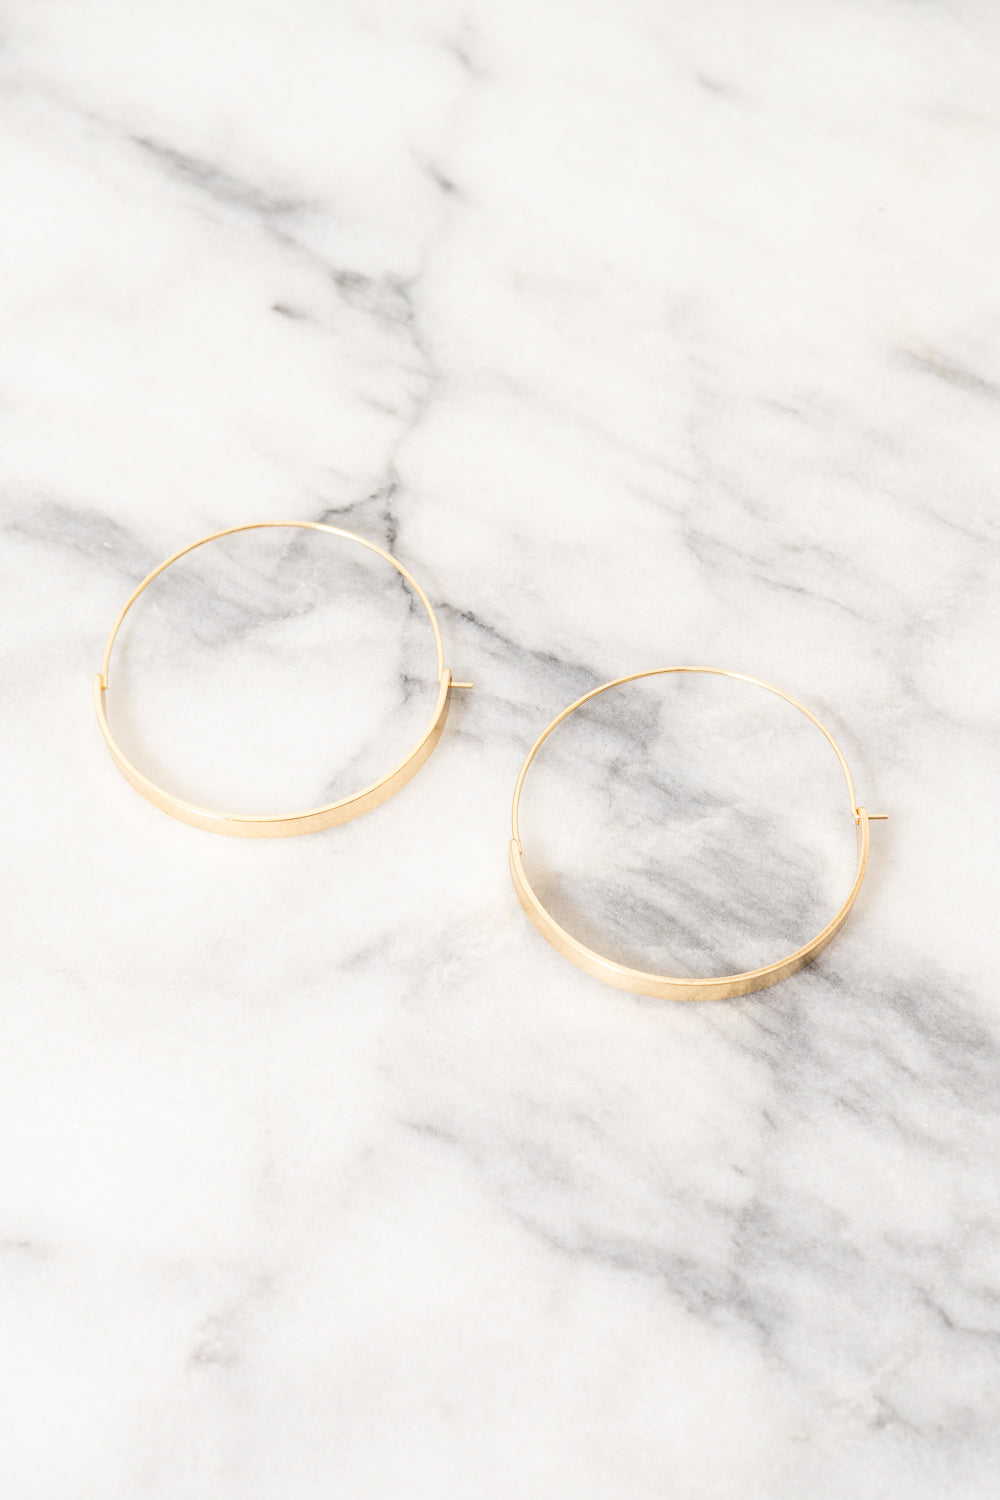 gold wire hoop earrings by Janna Conner